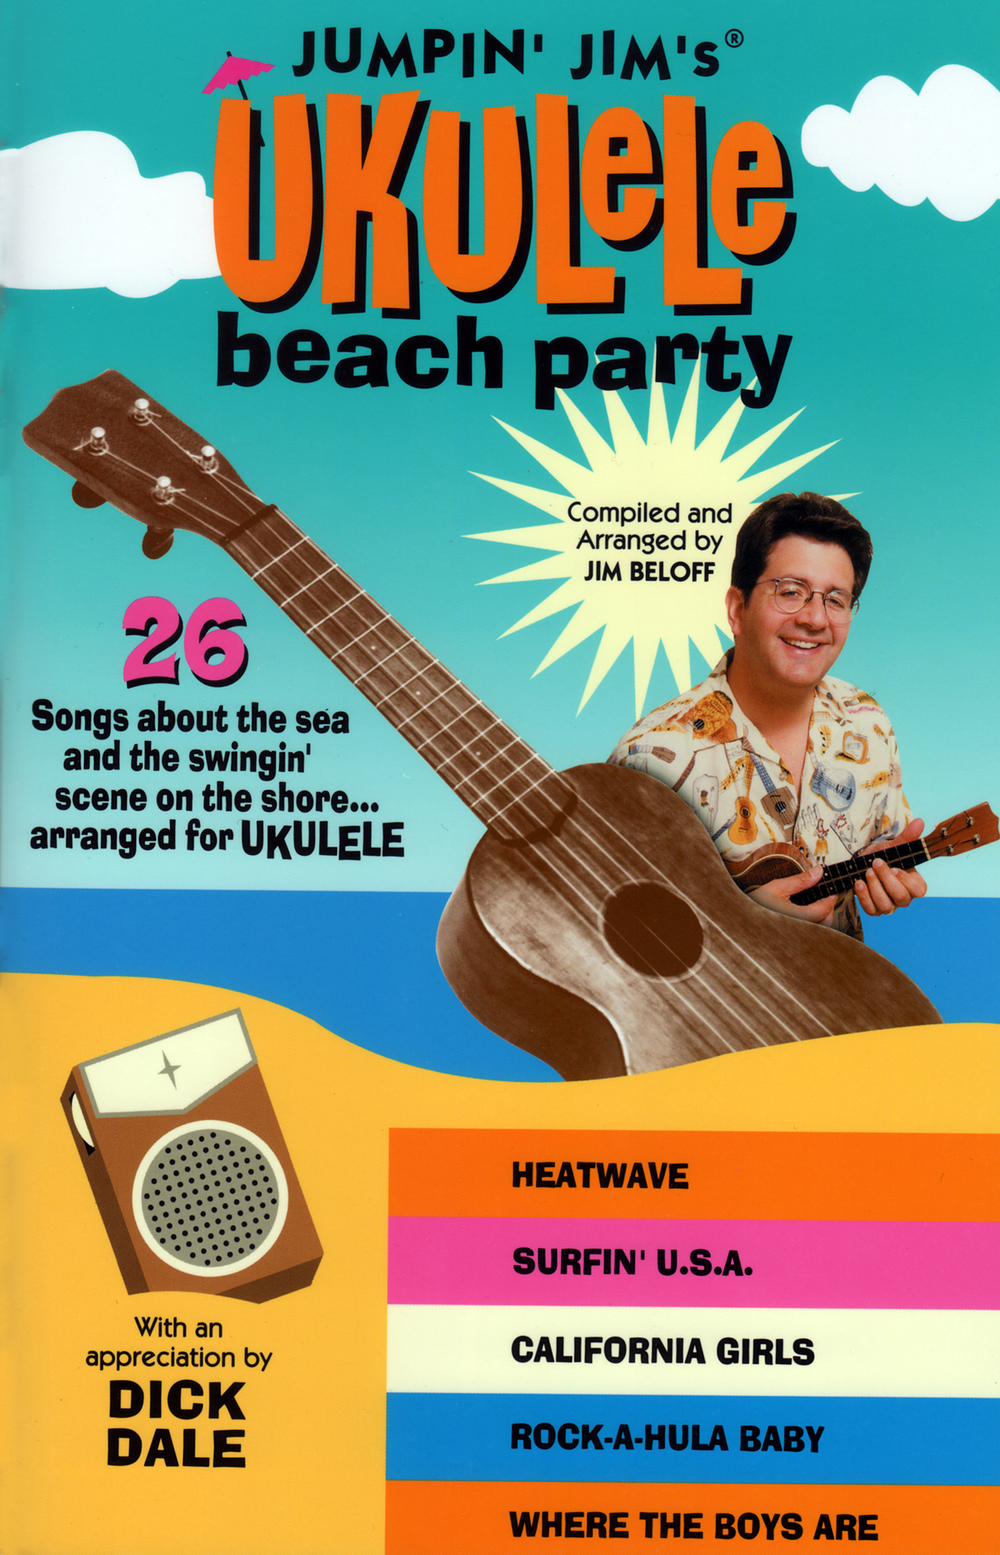 Jumpin' Jim's Ukulele Beach Party